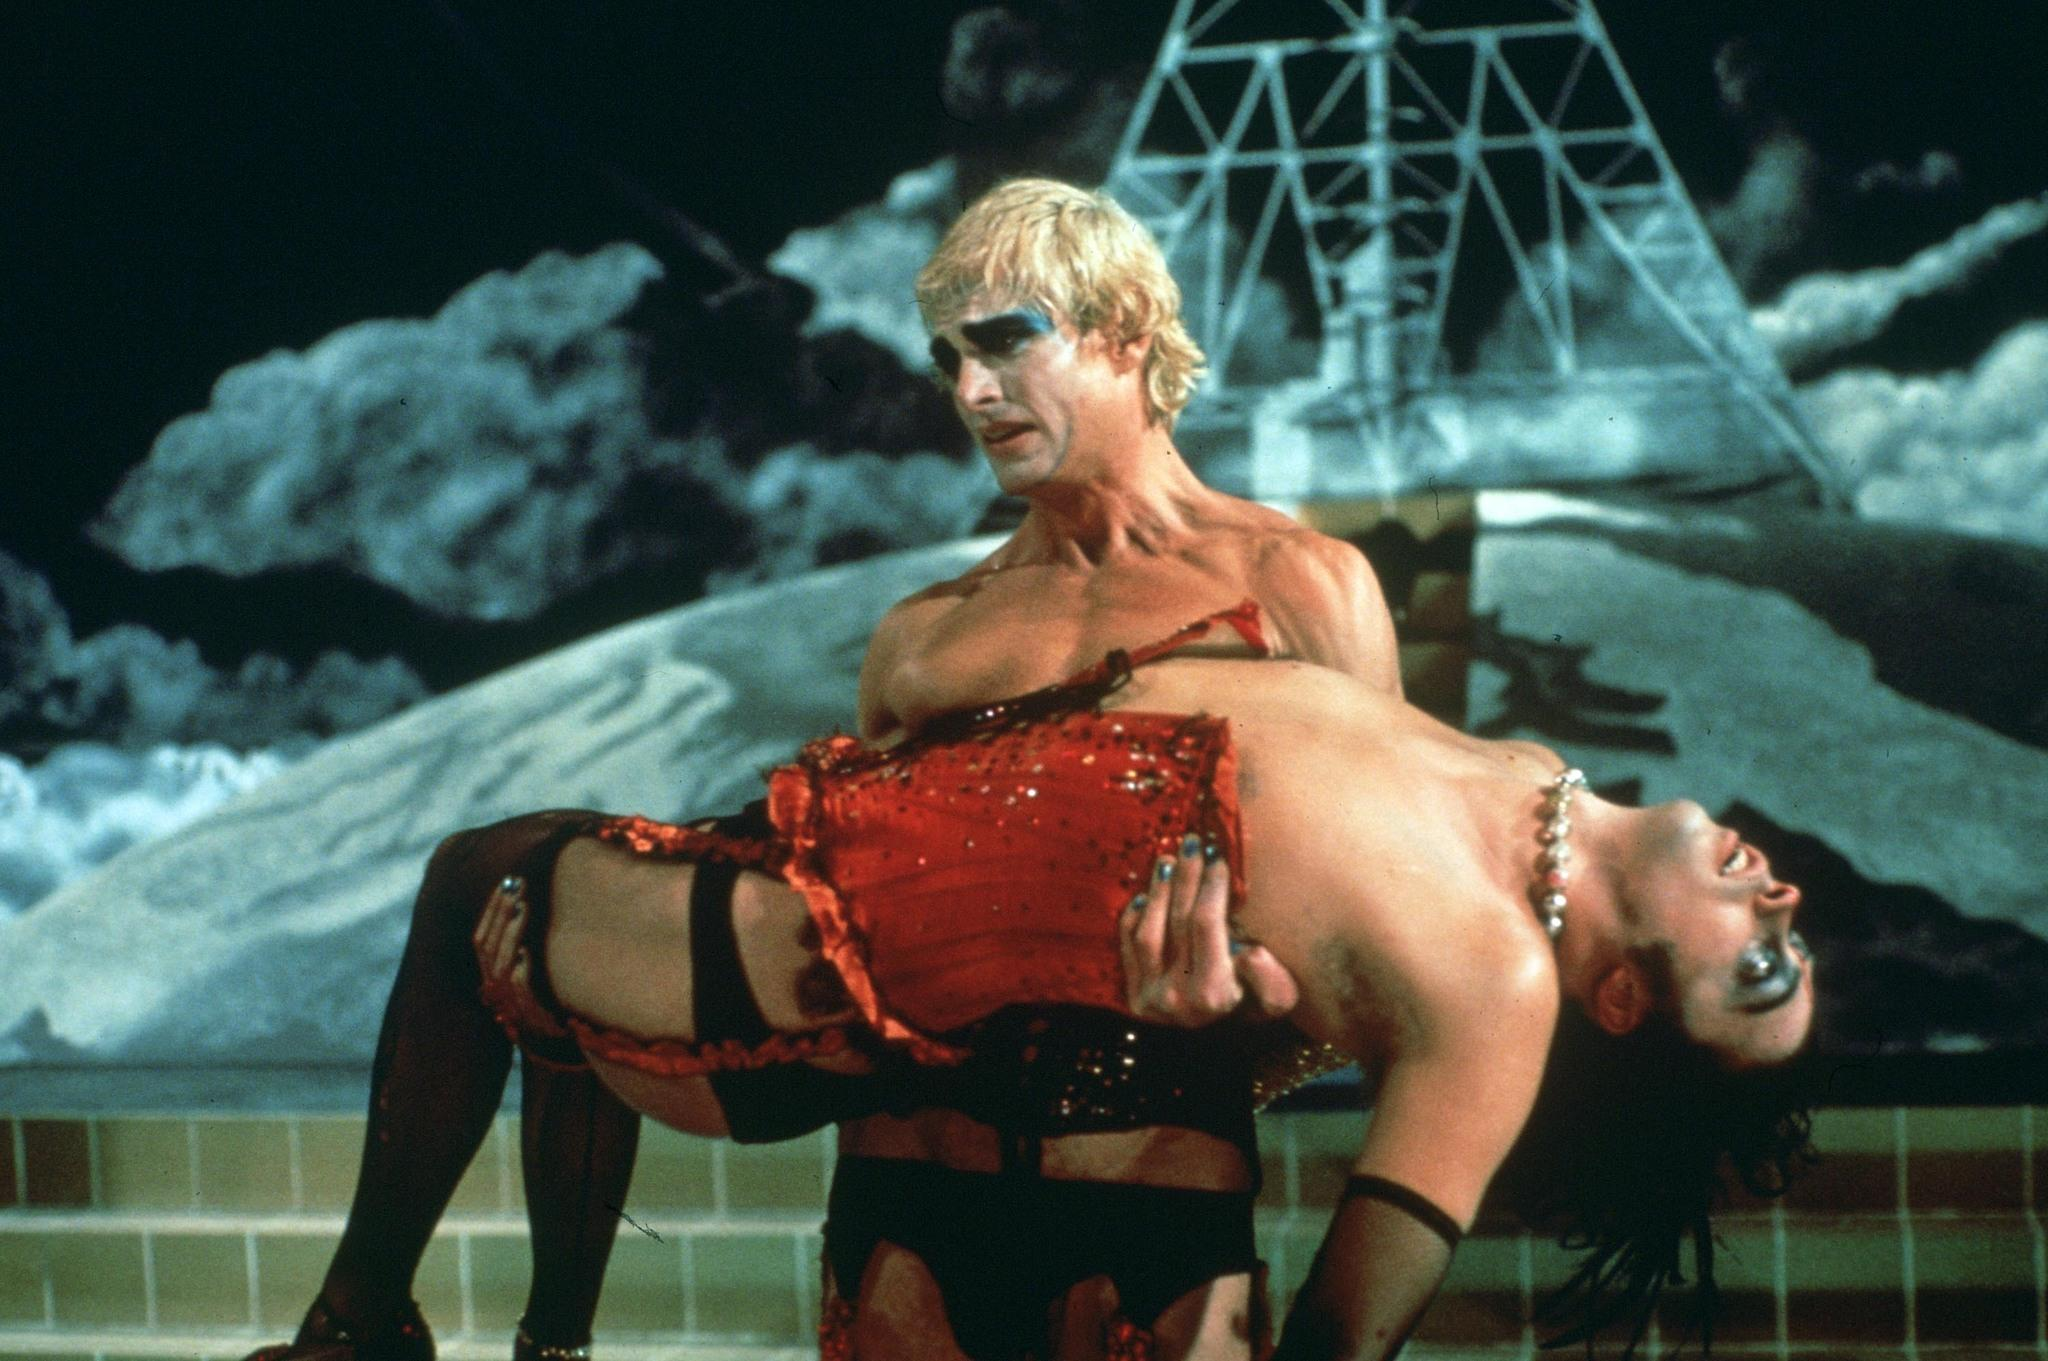 still-of-tim-curry-and-peter-hinwood-in-the-rocky-horror-picture-show-(1975)-large-picture.jpg